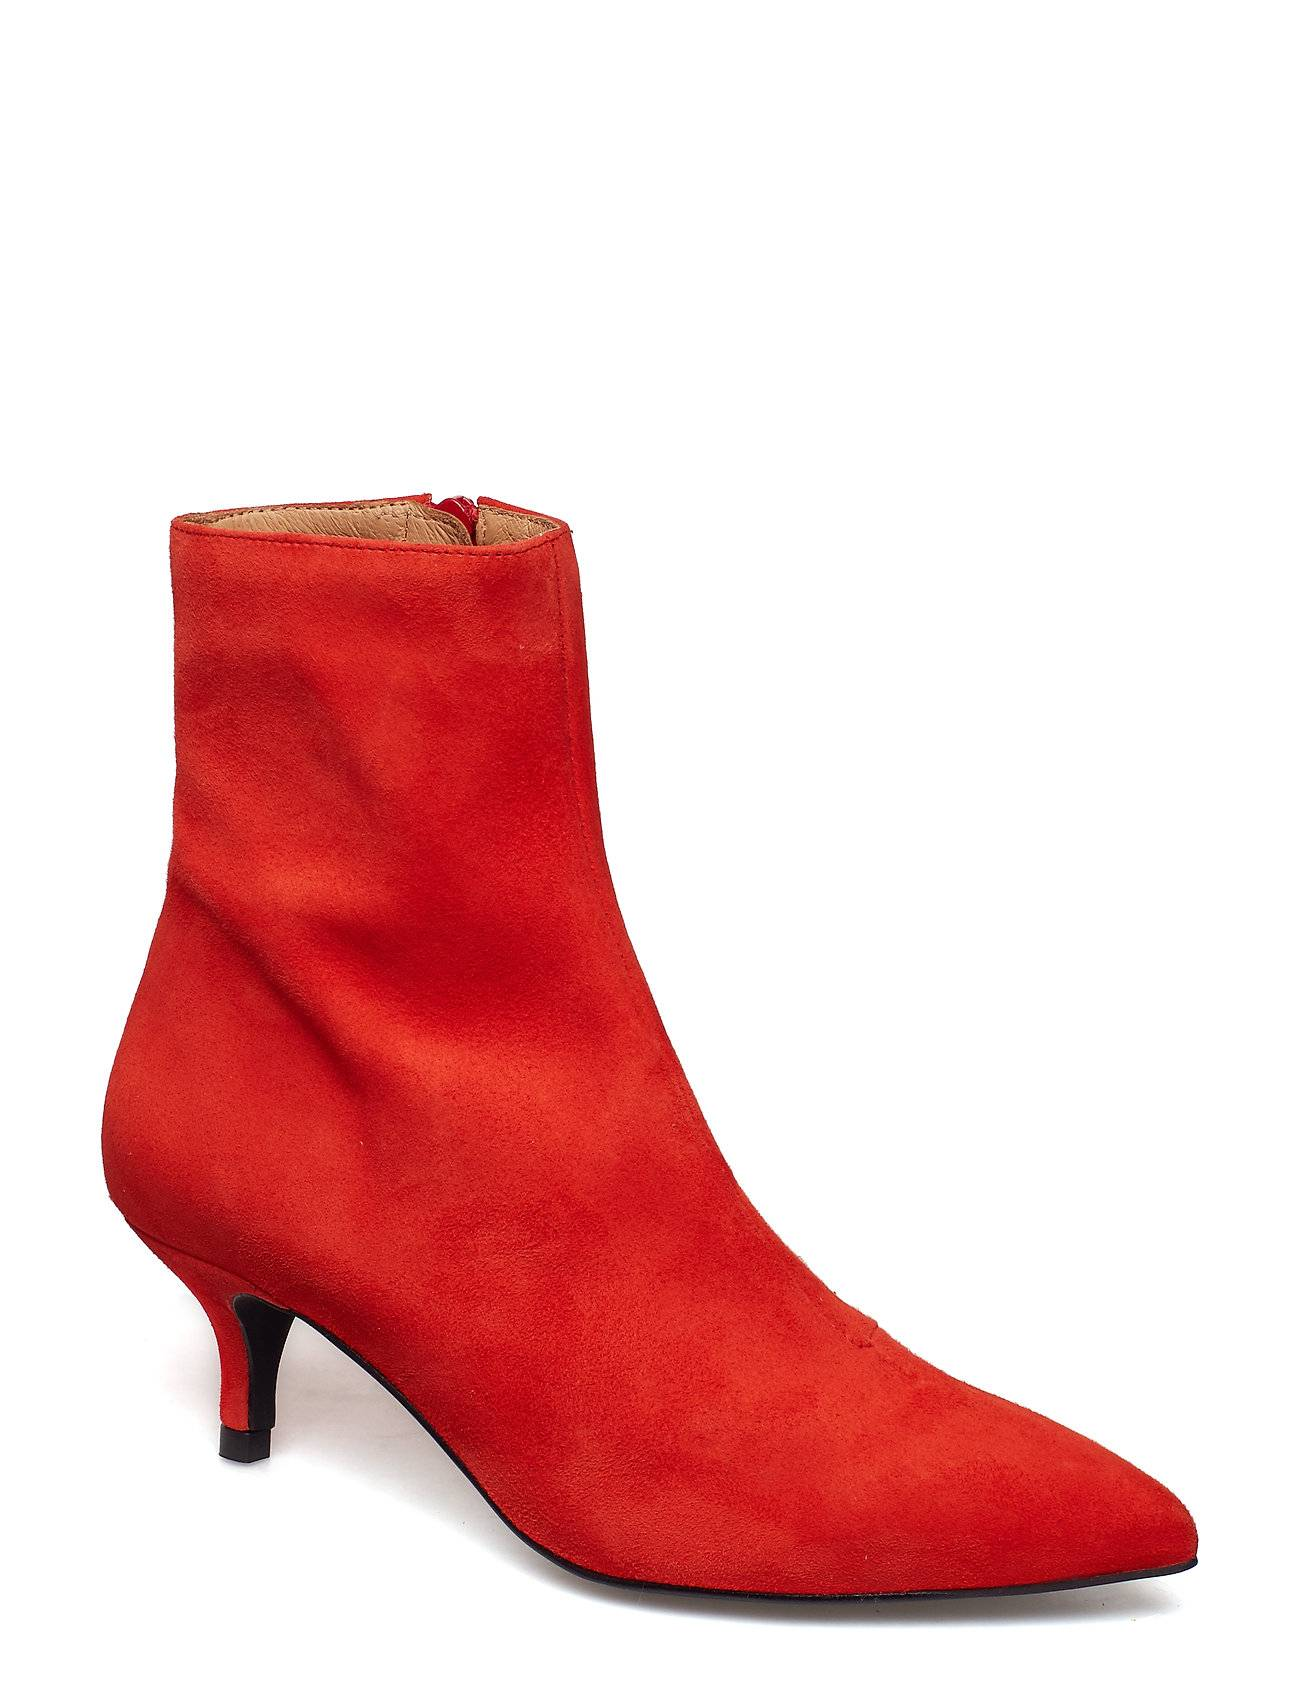 Henry Kole Grace Shoes Boots Ankle Boots Ankle Boots With Heel Punainen Henry Kole